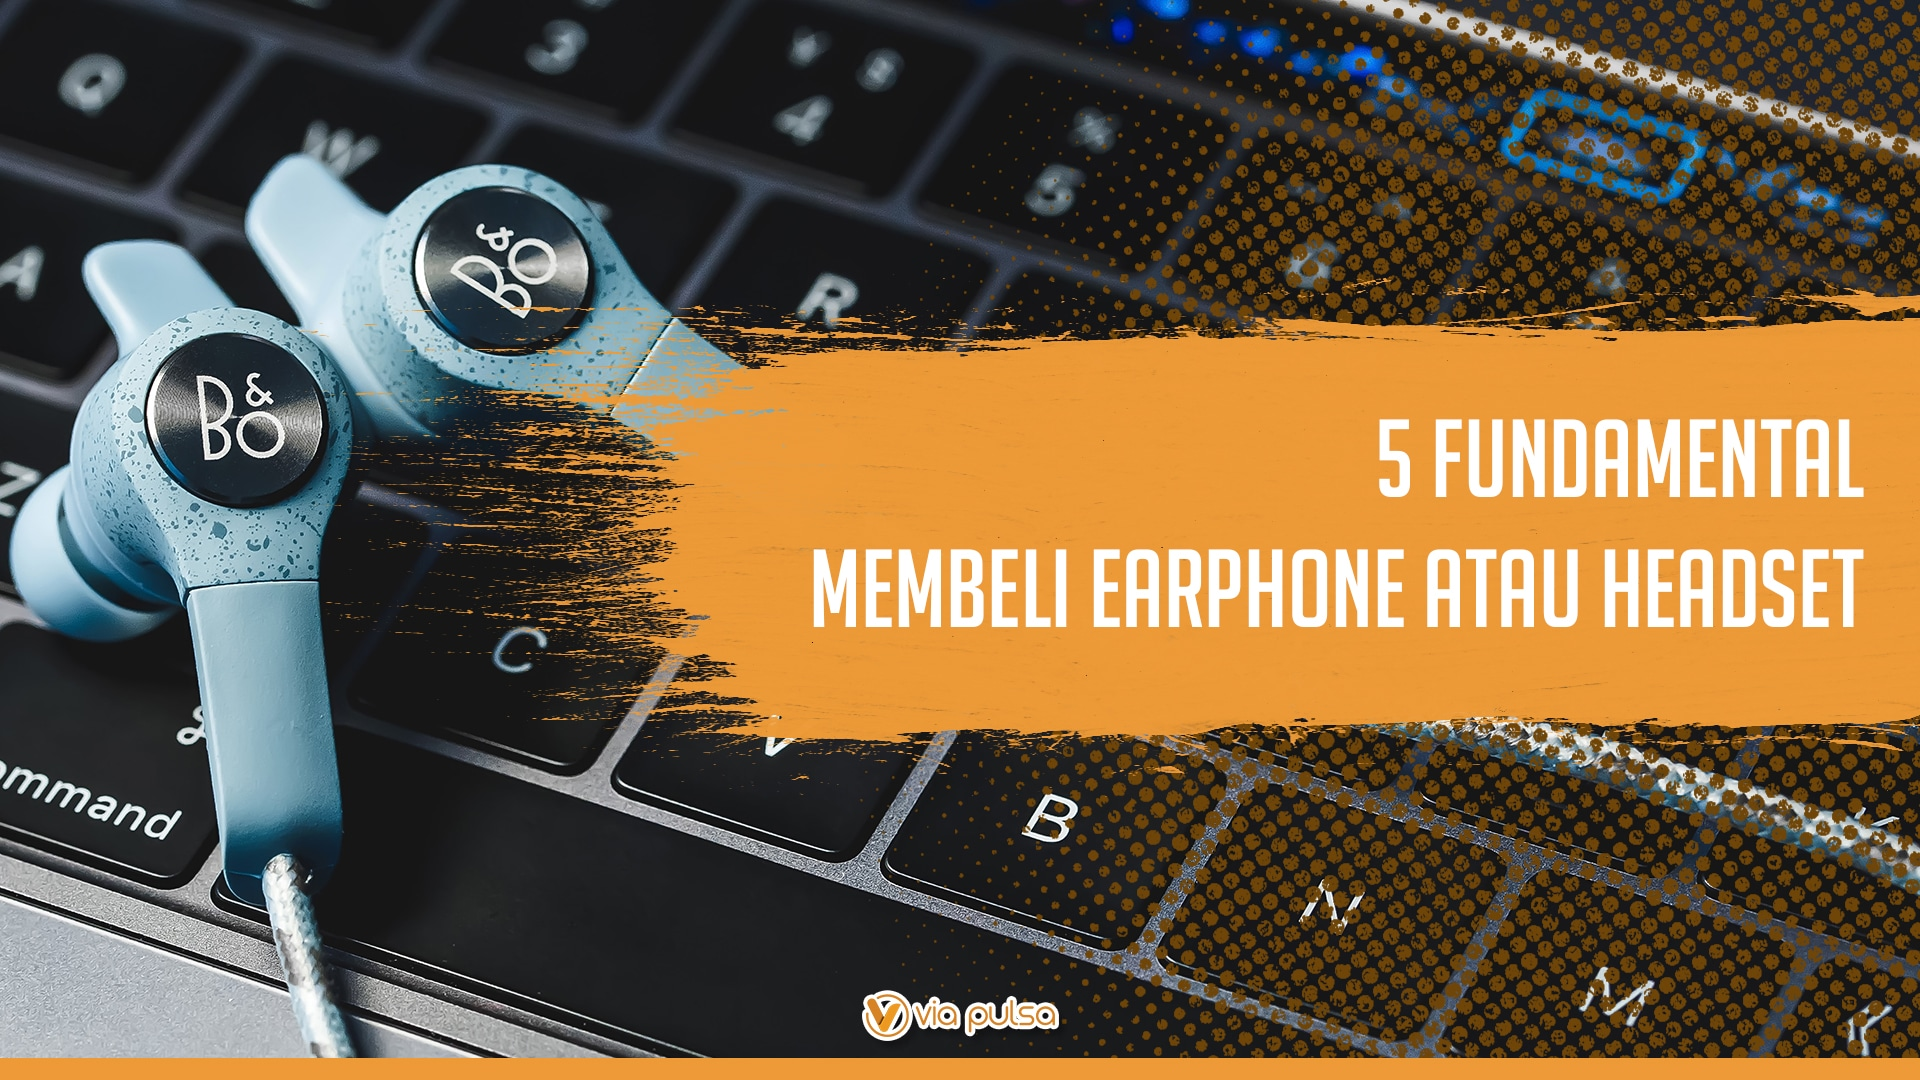 Background Artikel 5 Fundamental Membeli Earphone Atau Headset